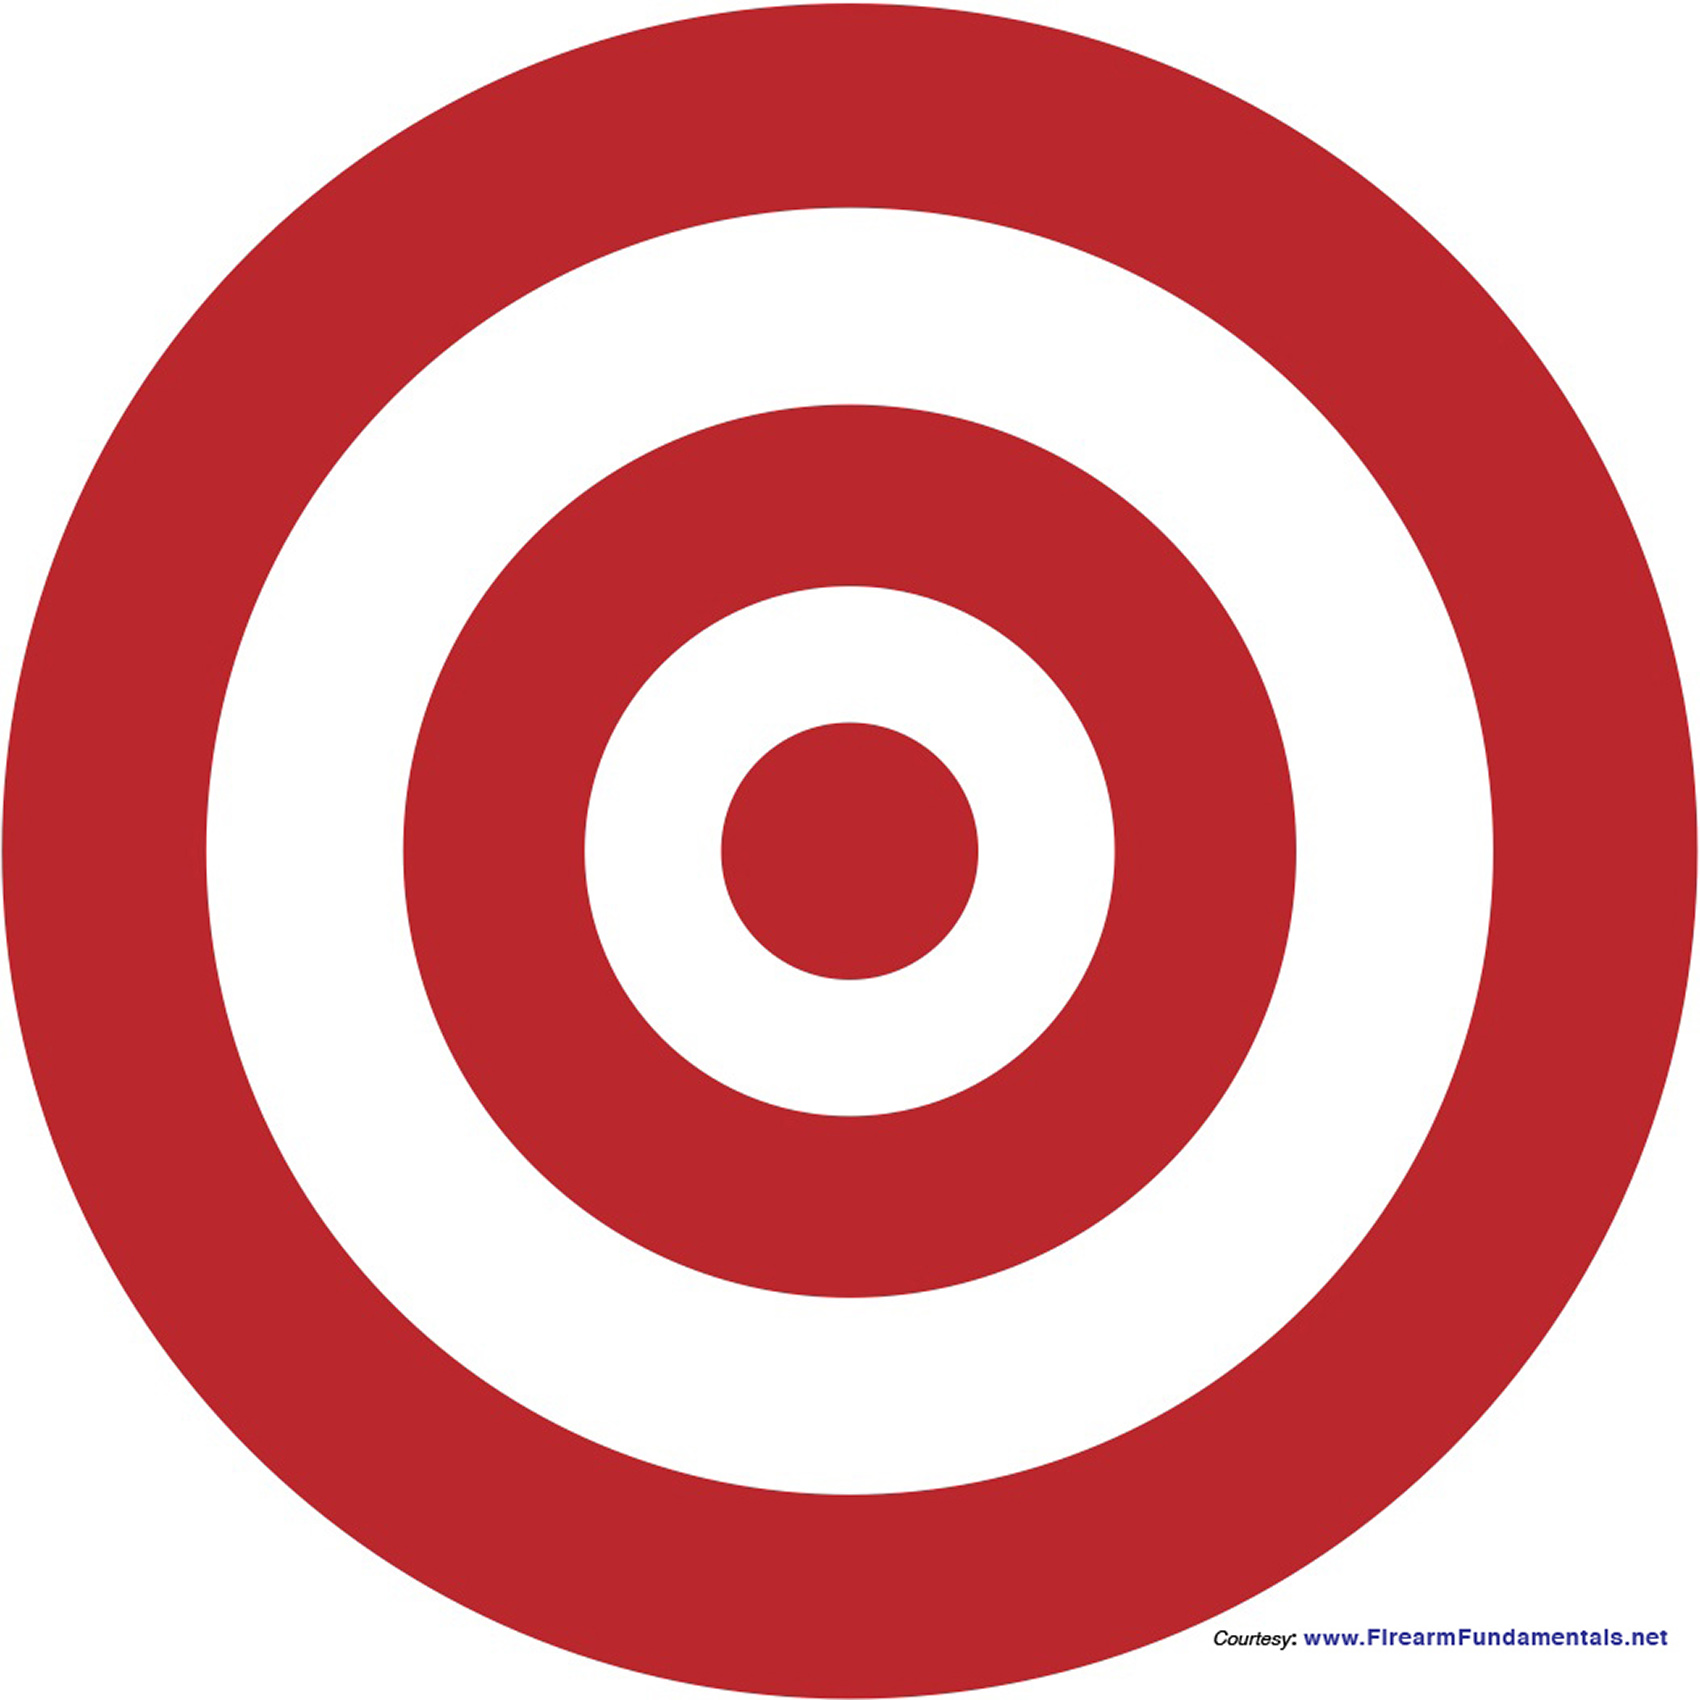 25 Bullseye Images Free Cliparts That You Can Download To You Computer